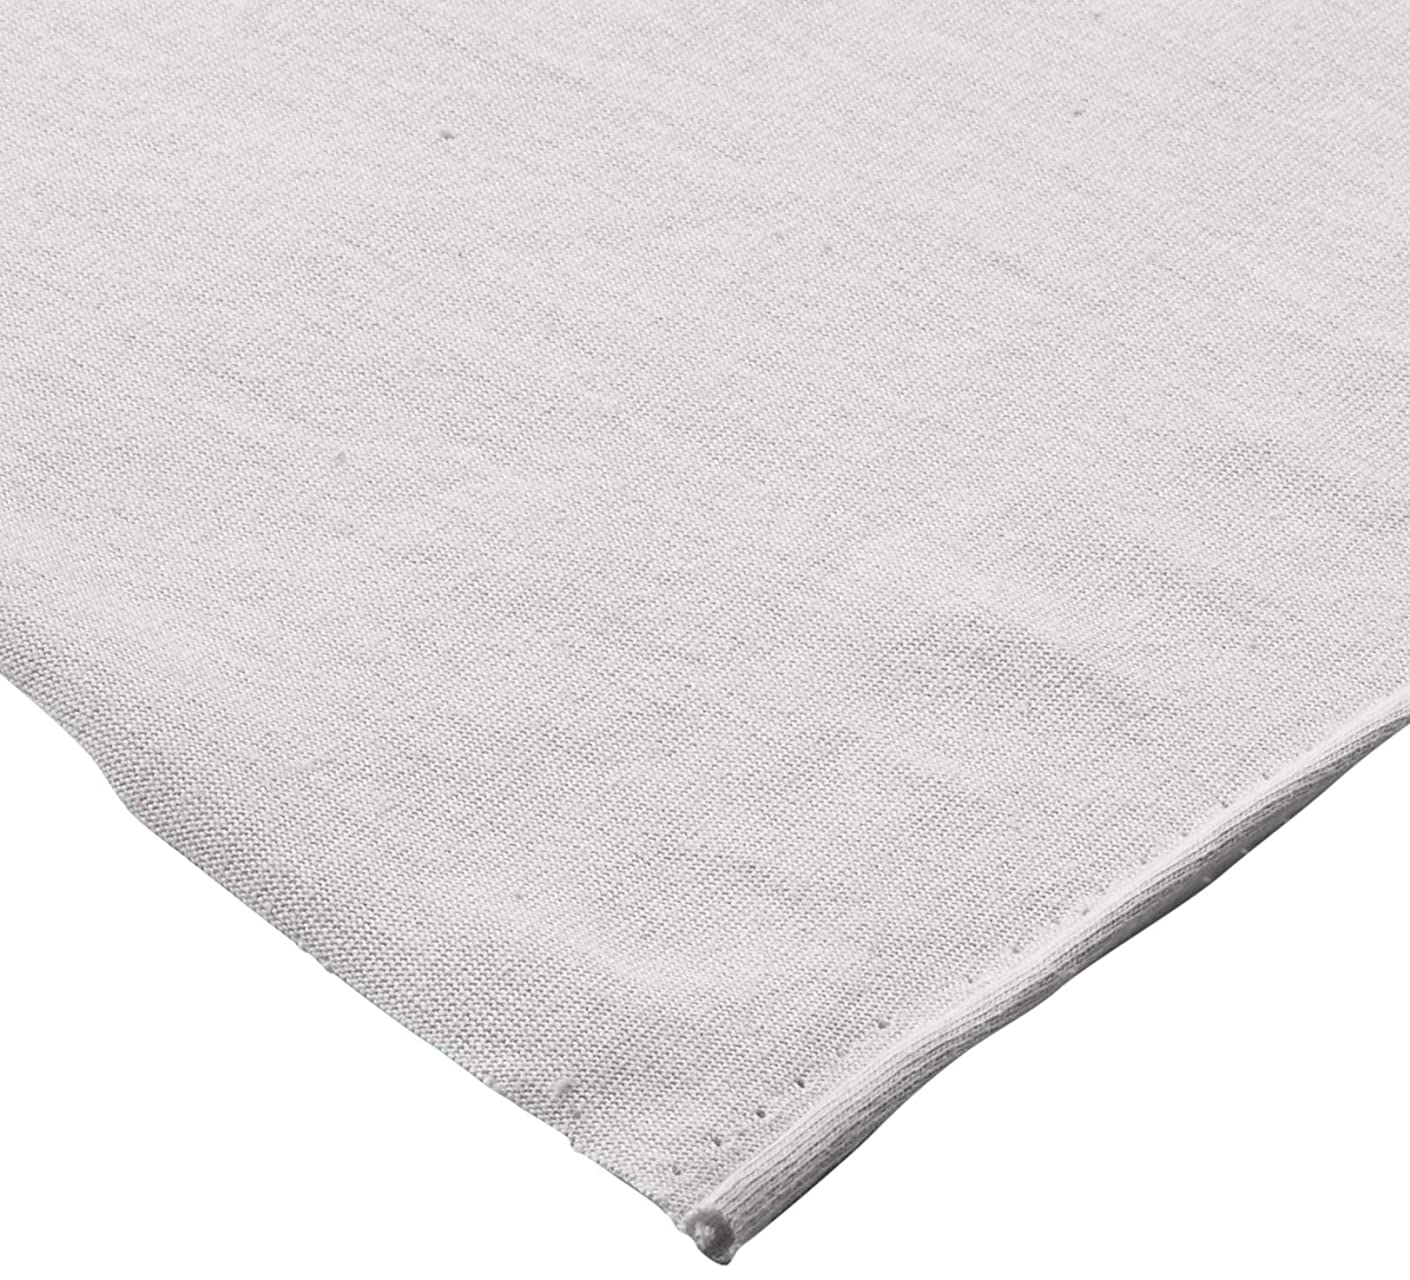 SheetWorld Solid White Jersey Knit Fabric - By The Yard, 36 x 60